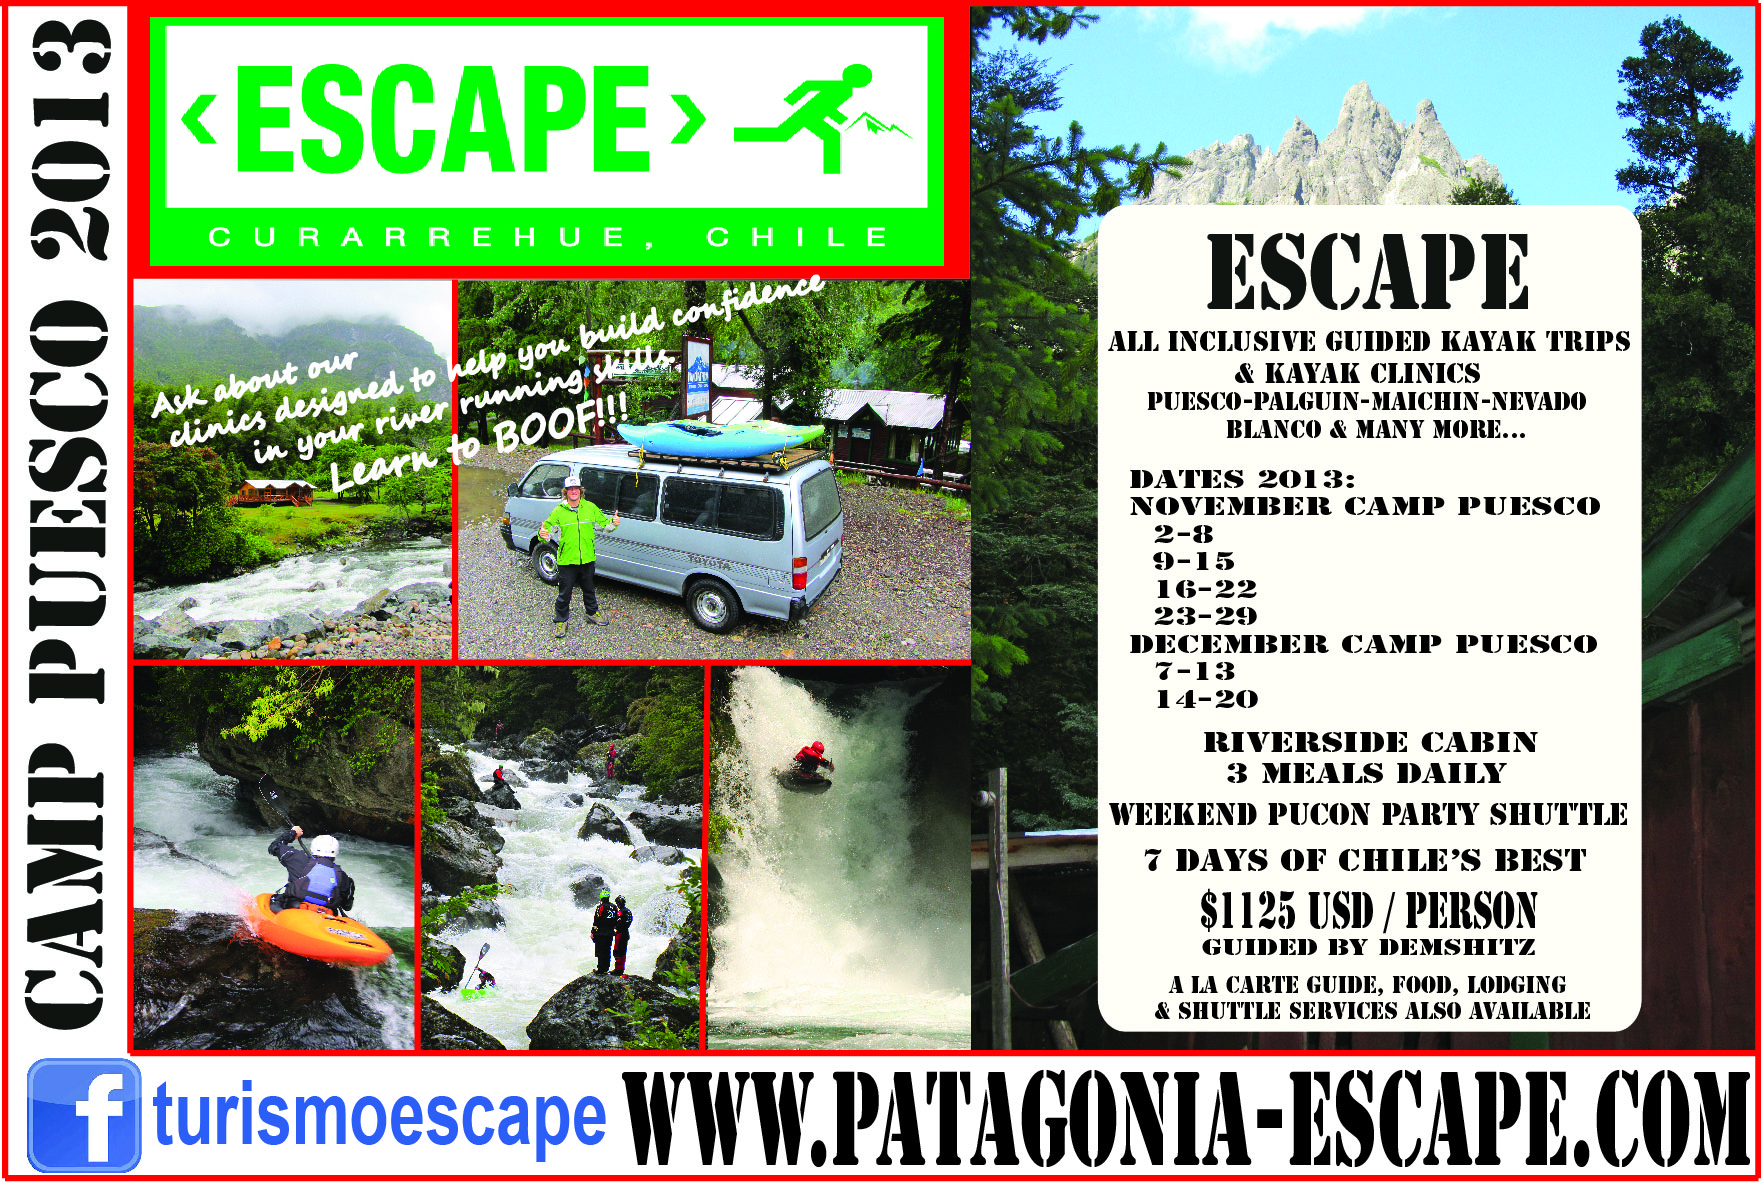 Click image for larger version  Name:camp puesco 2.jpg Views:169 Size:2.08 MB ID:5659